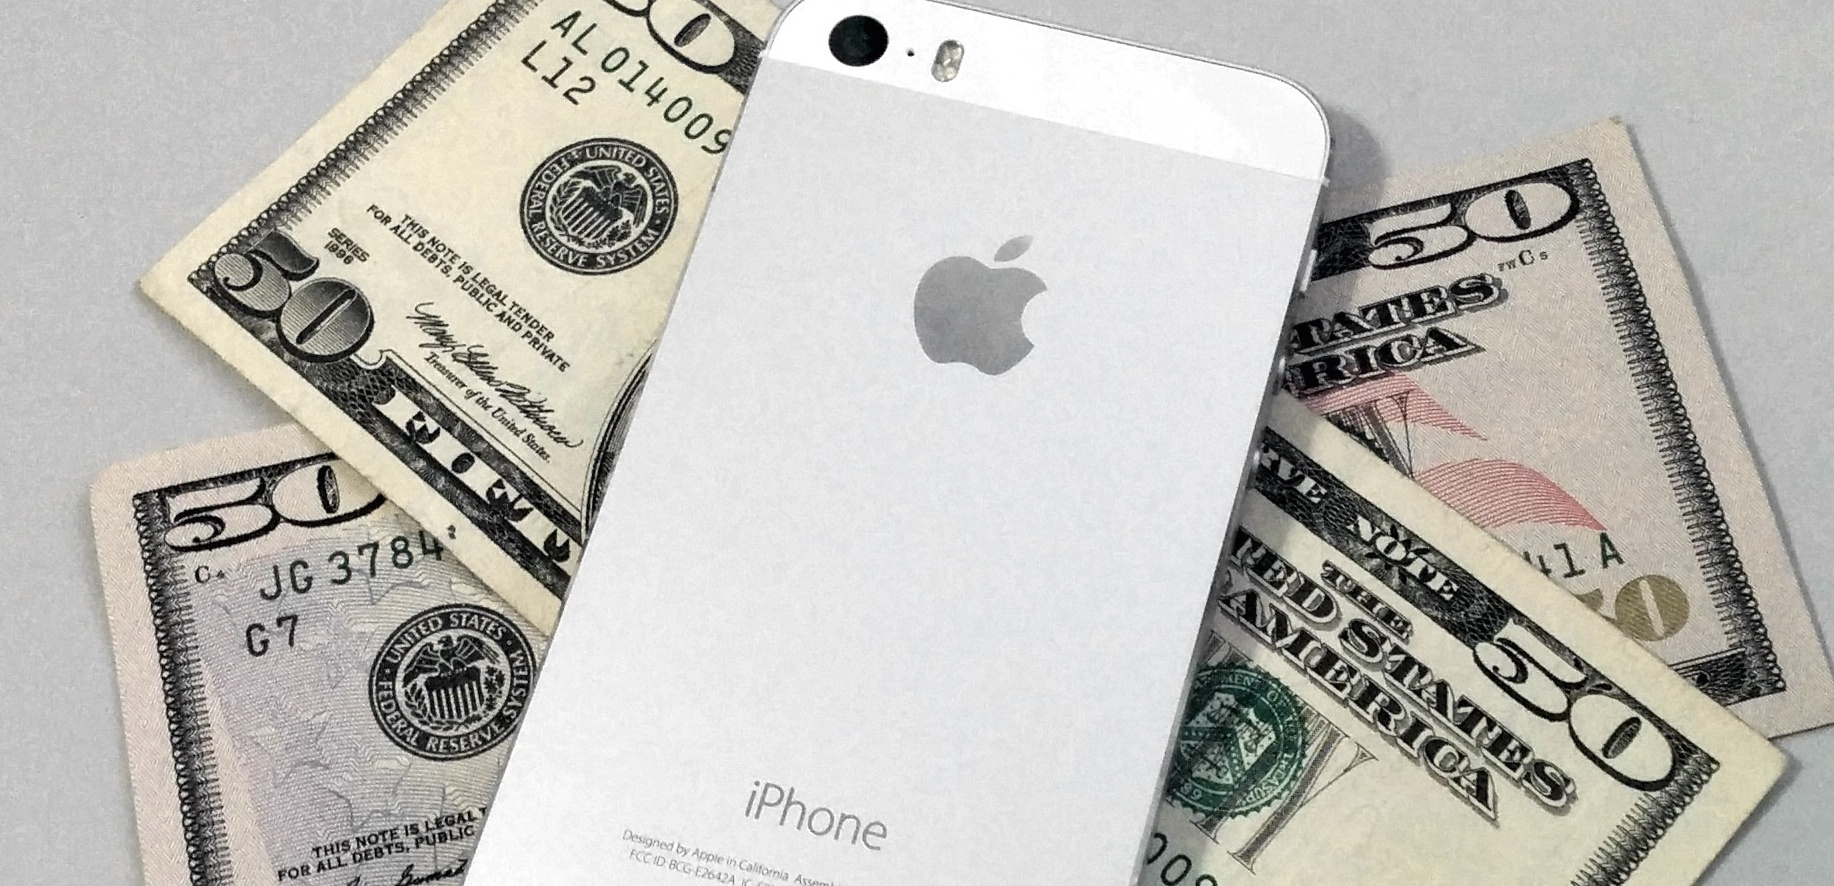 iPhone 6 Price: How You'll Pay More Without knowing It